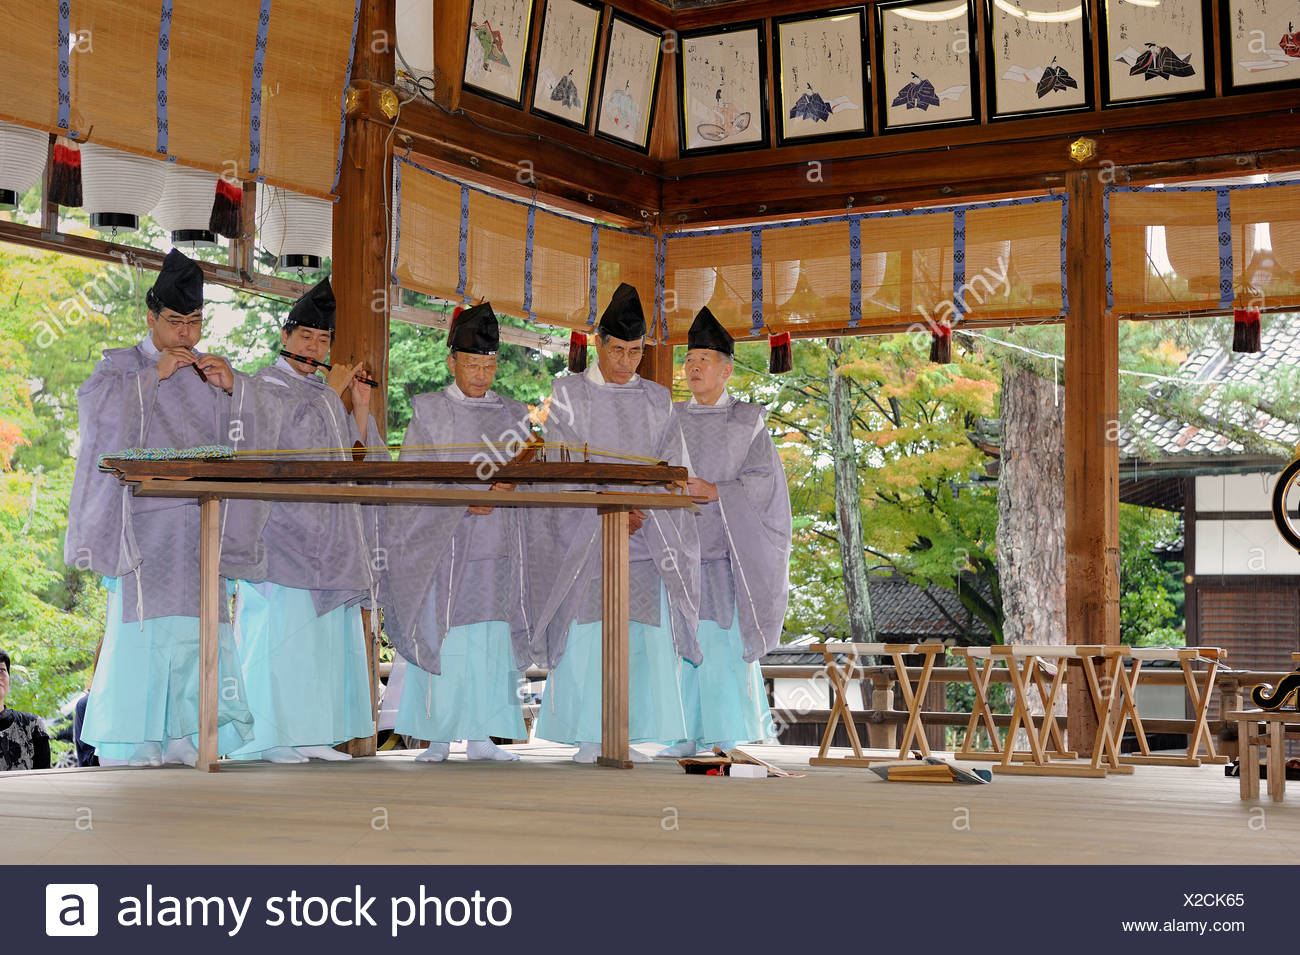 Shinto instrumental group in Imamiya Shrine, Jidai-Matsuri Autumn Festival, Kyoto, Japan, Asia - Stock Image